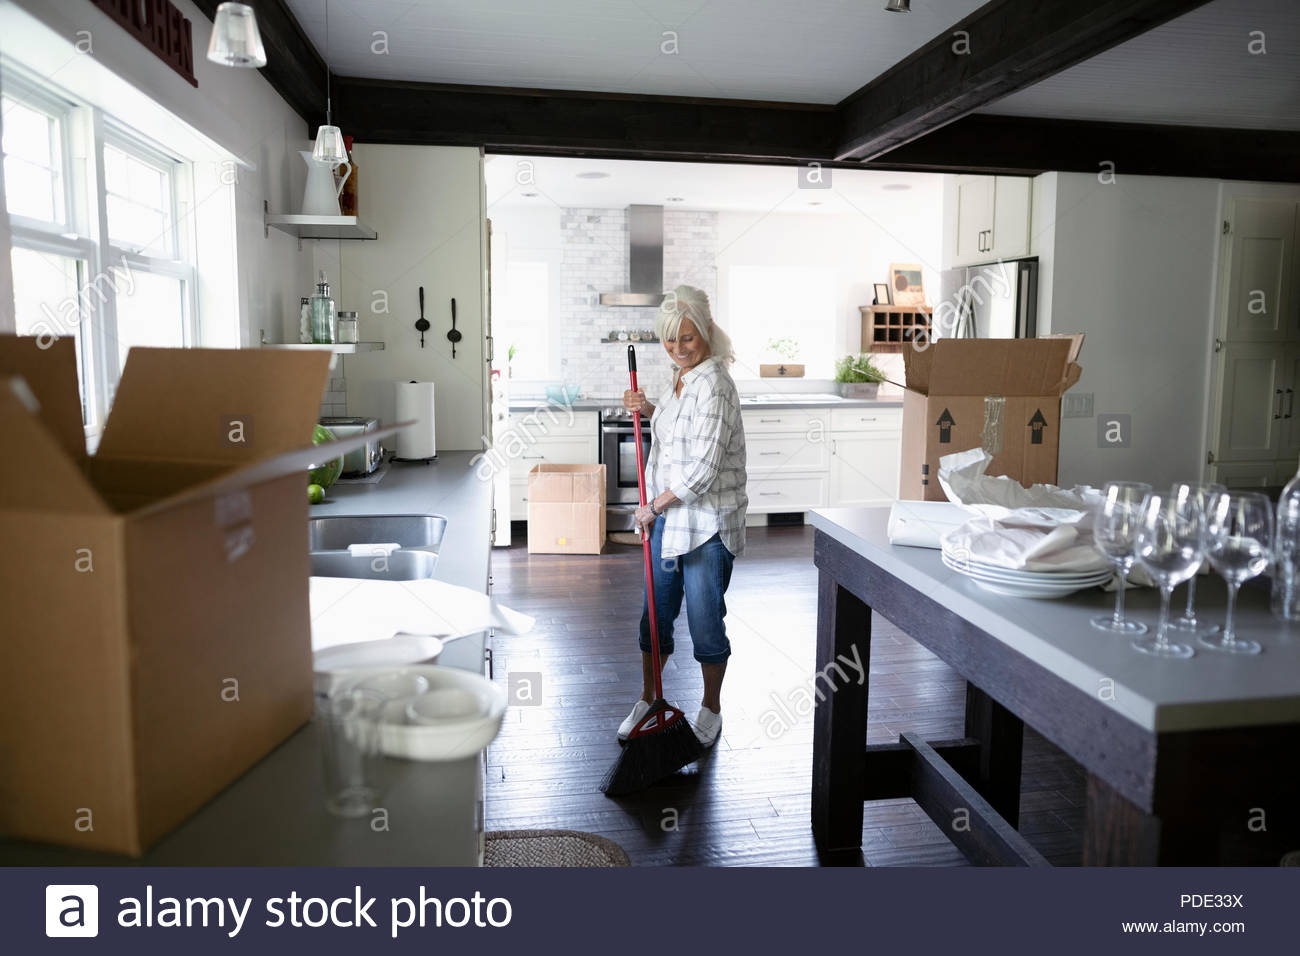 Senior woman downsizing, packing and sweeping kitchen - Stock Image